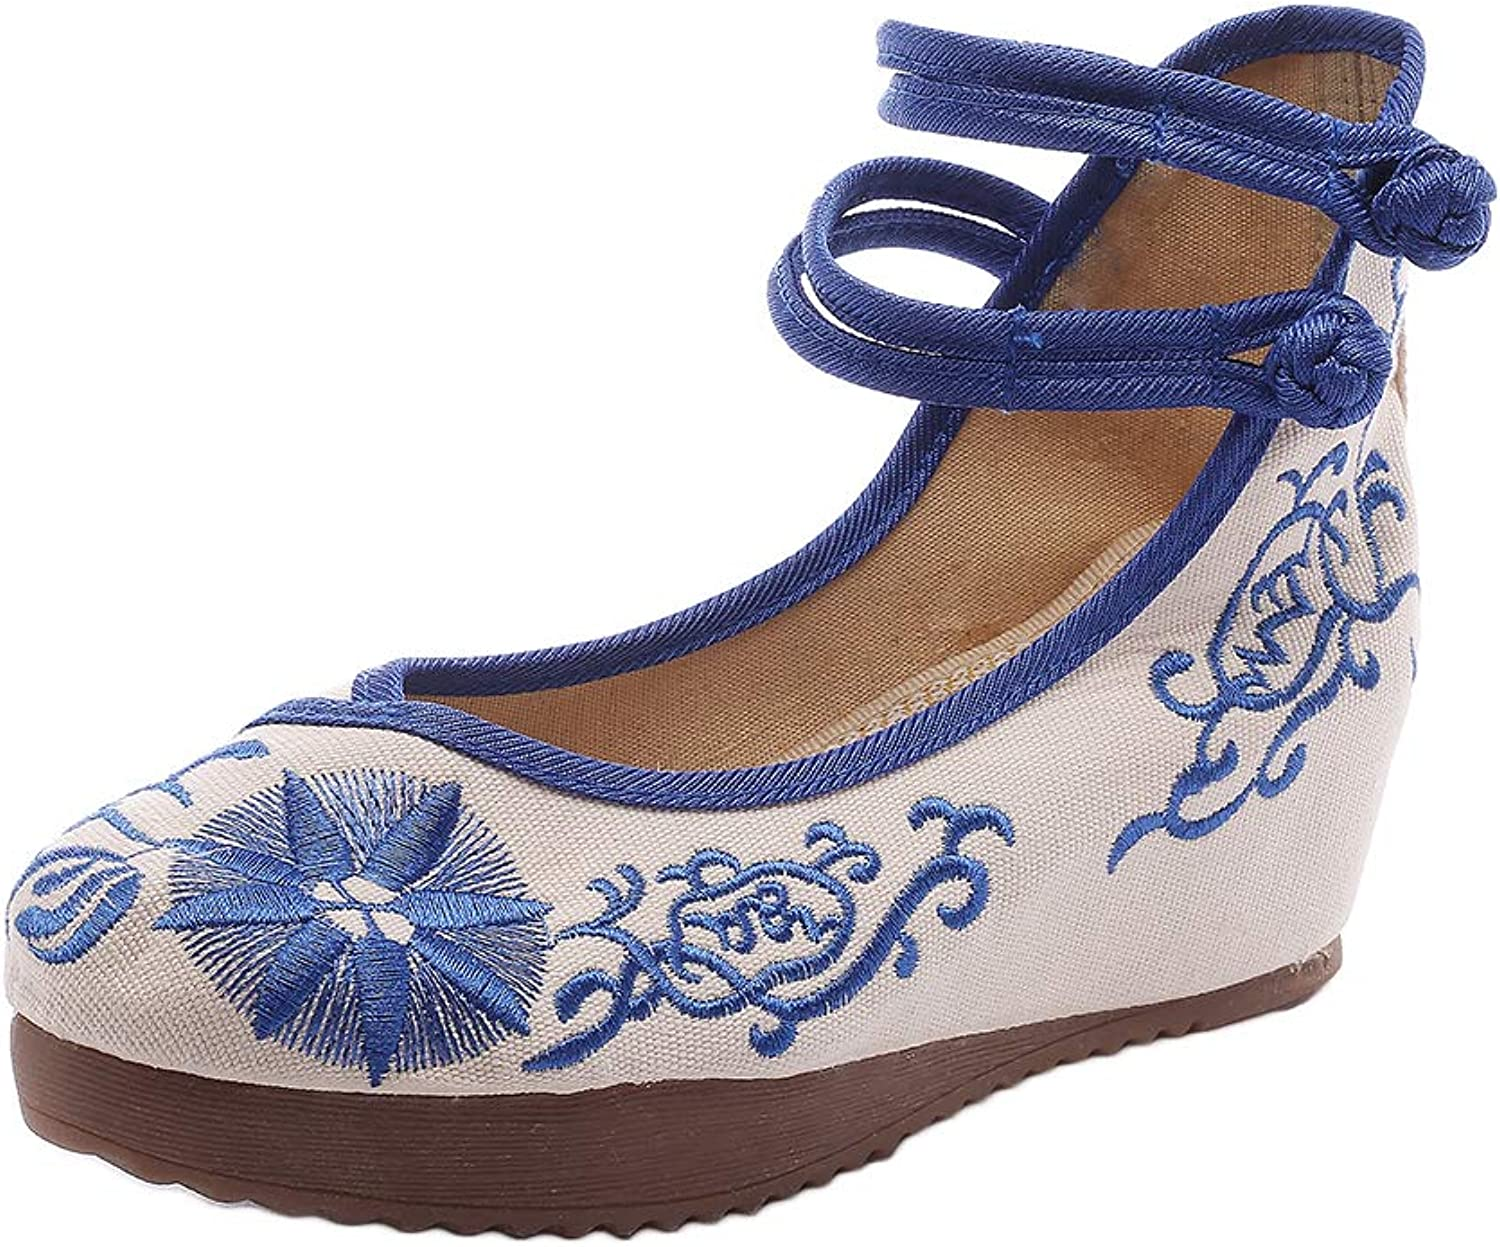 AvaCostume Women's Embroidery Strappy Round Toe Platform Wedges bluee